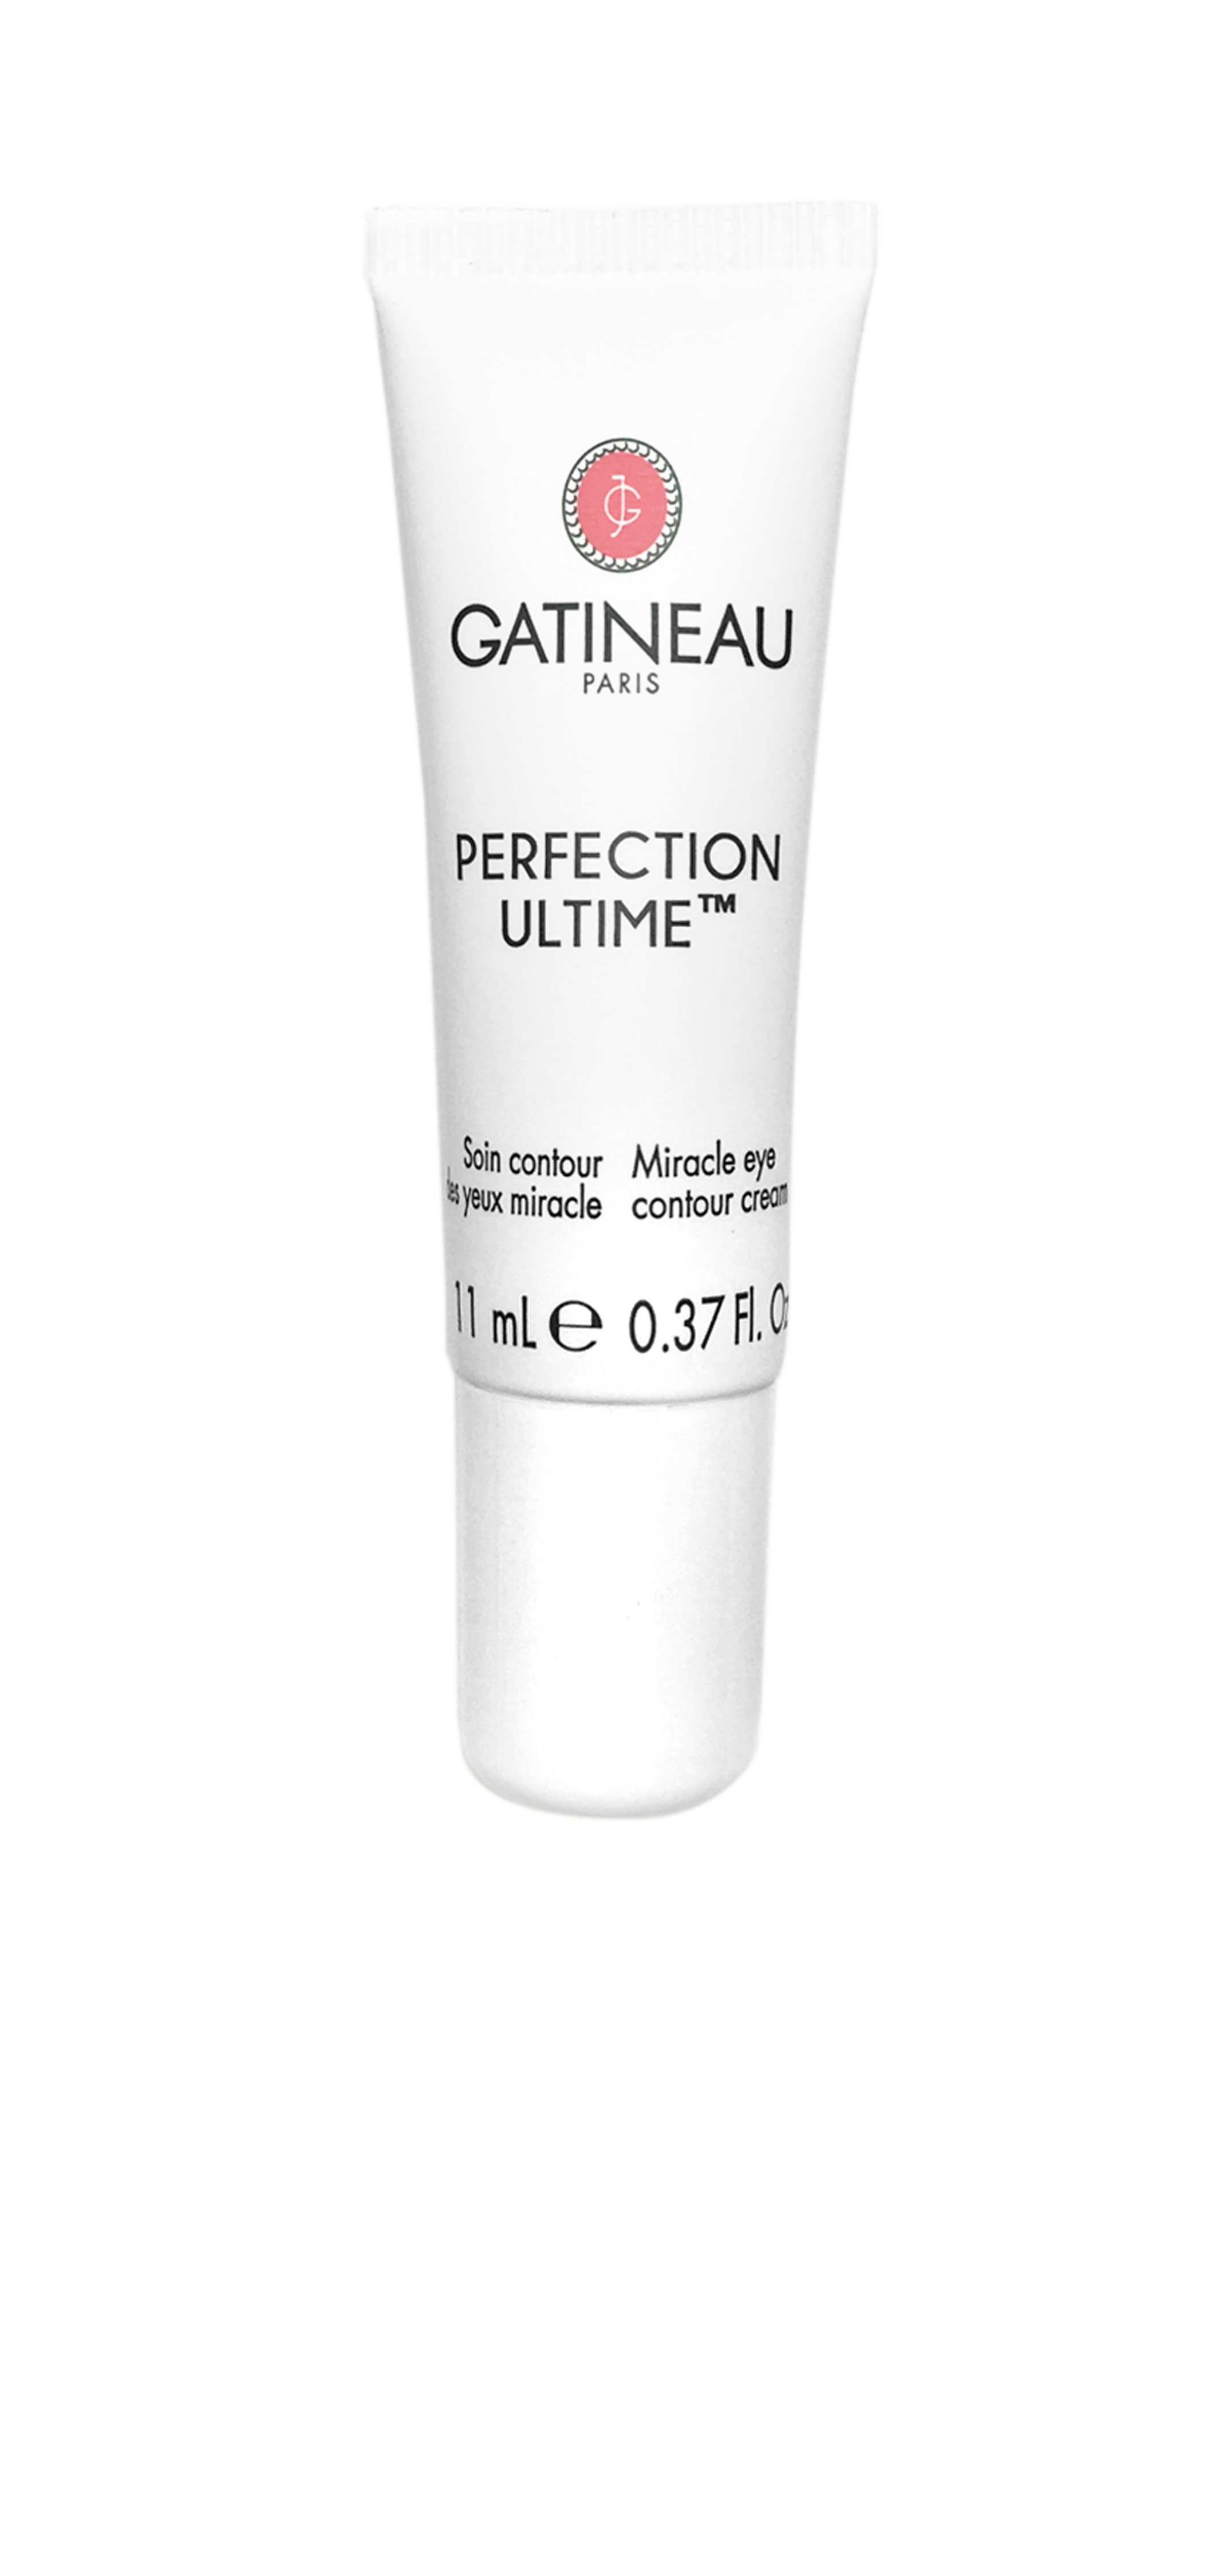 Perfection Ultime™ Miracle Eye Contour Cream 11ml